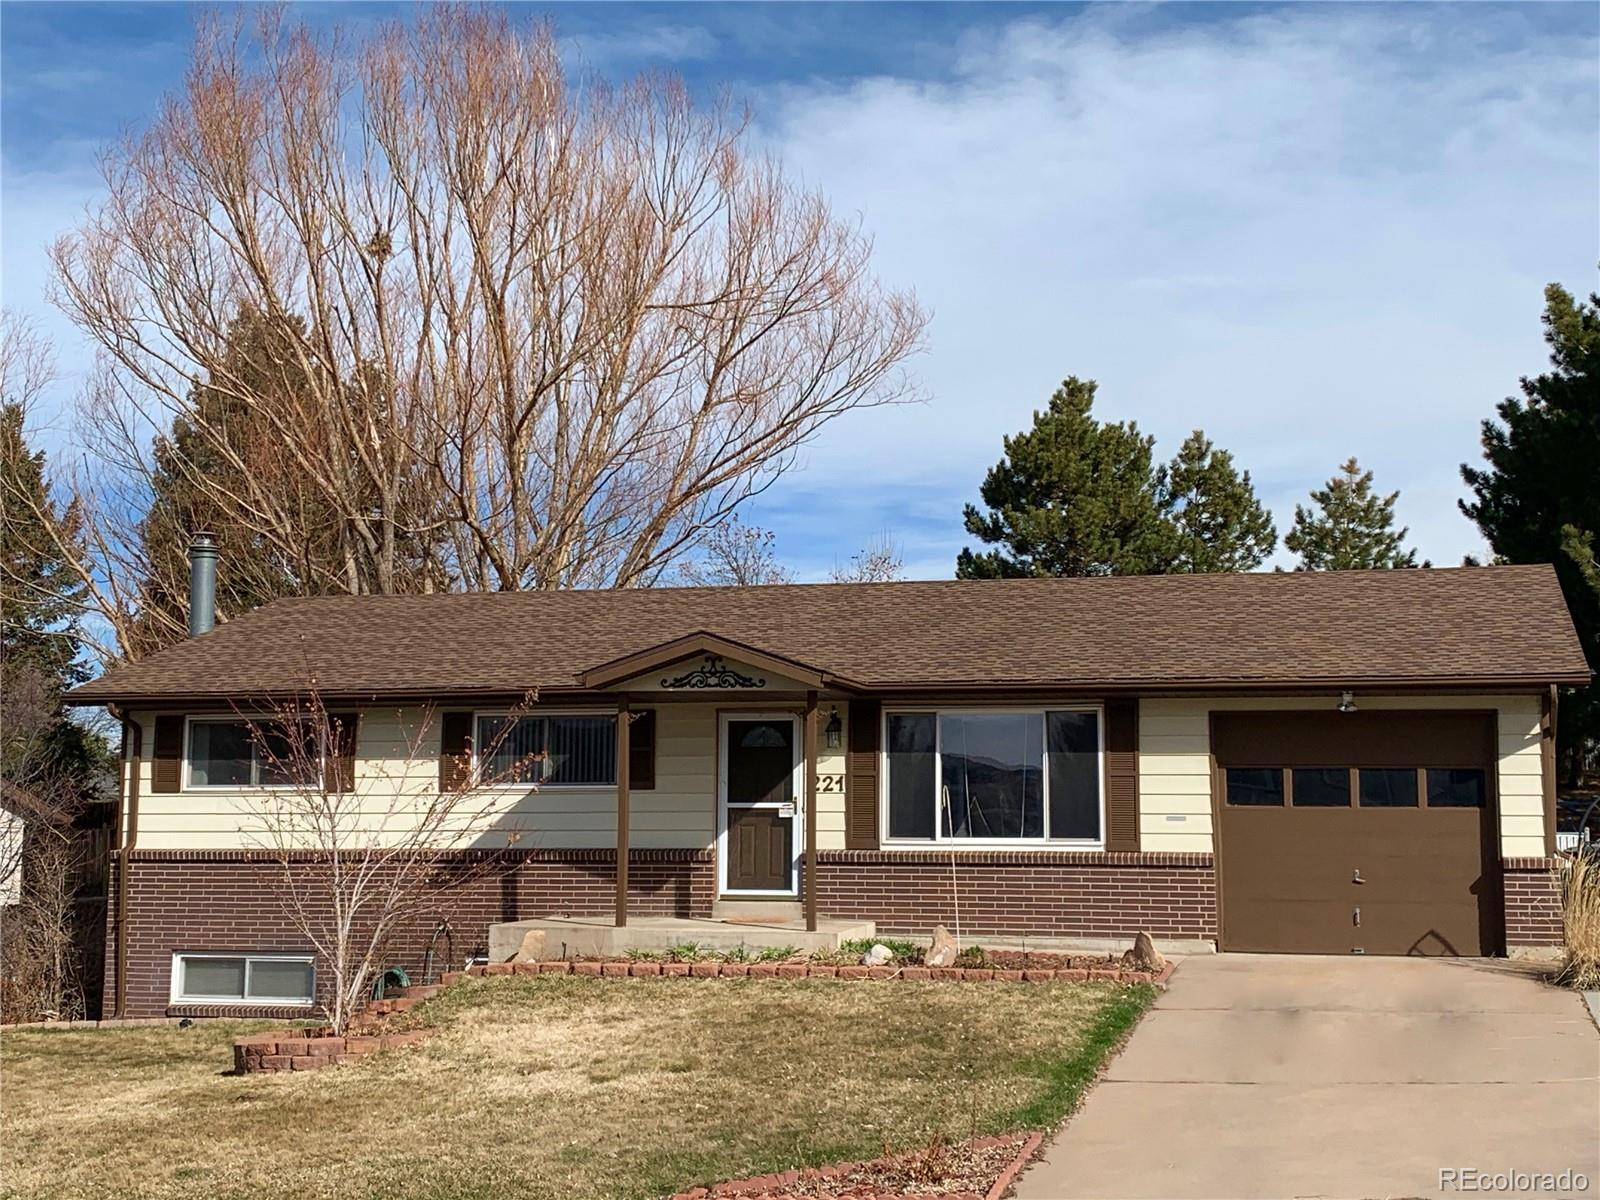 MLS# 4797079 - 1 - 221 Douglas Fir Avenue, Castle Rock, CO 80104